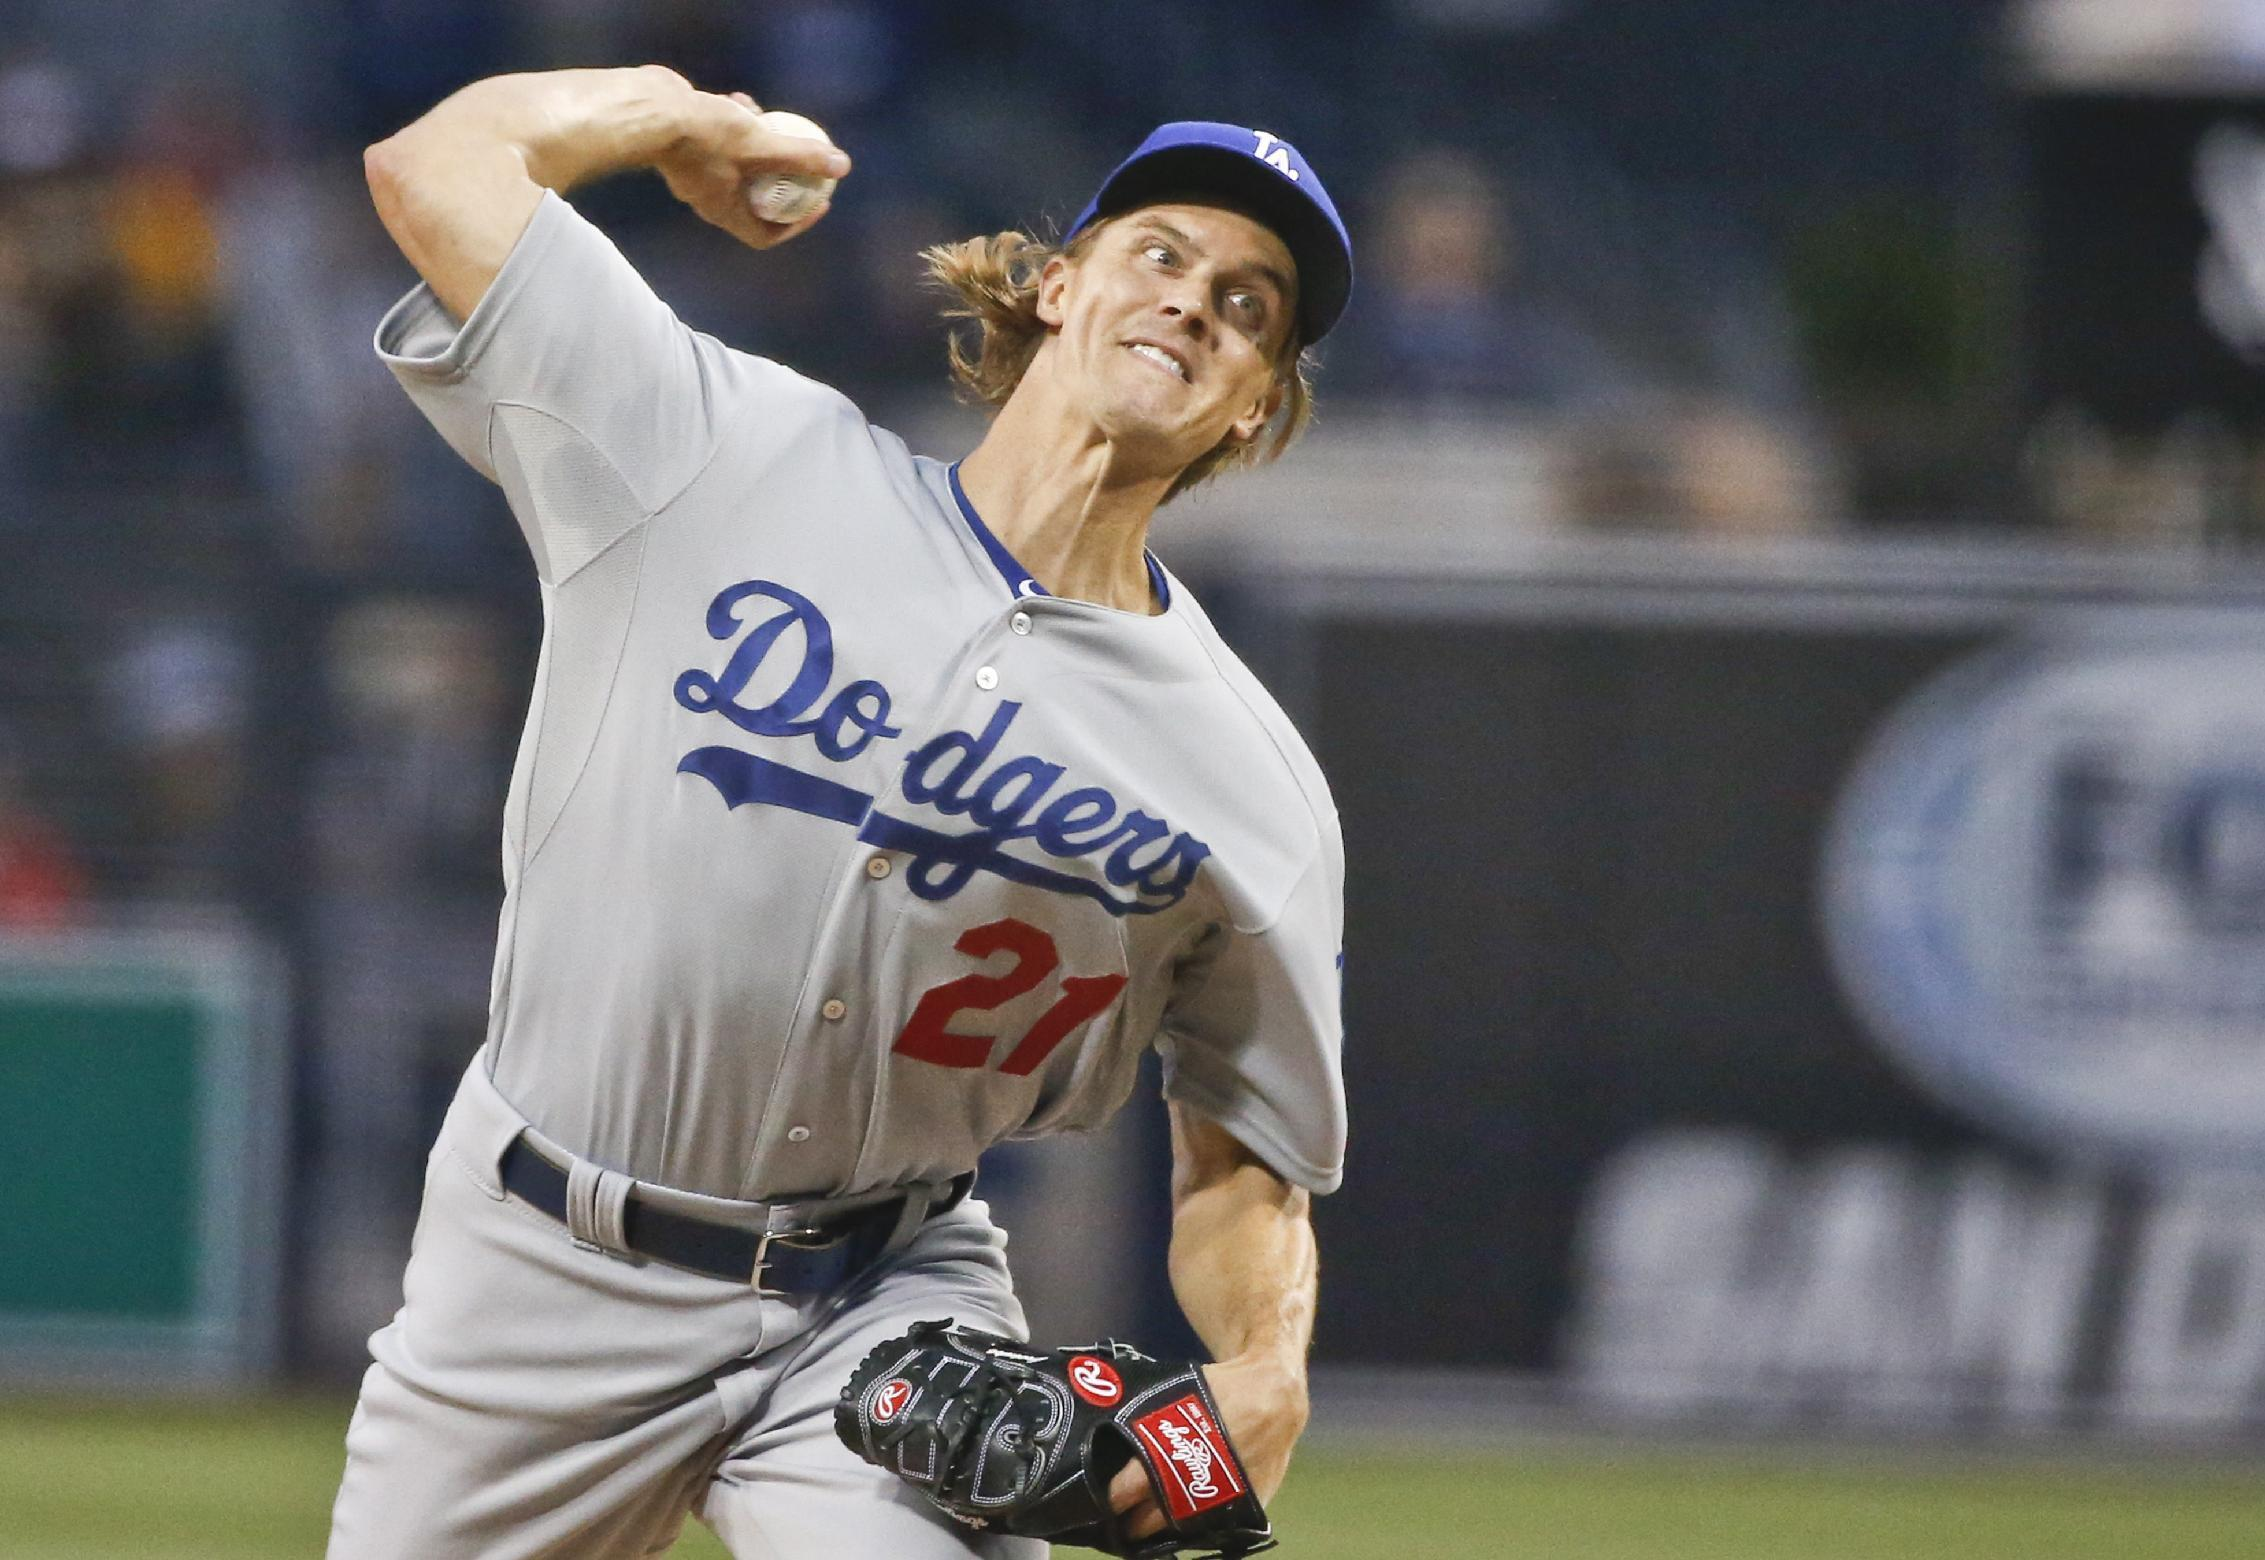 Greinke shuts down Padres to help Dodgers to 3-0 victory